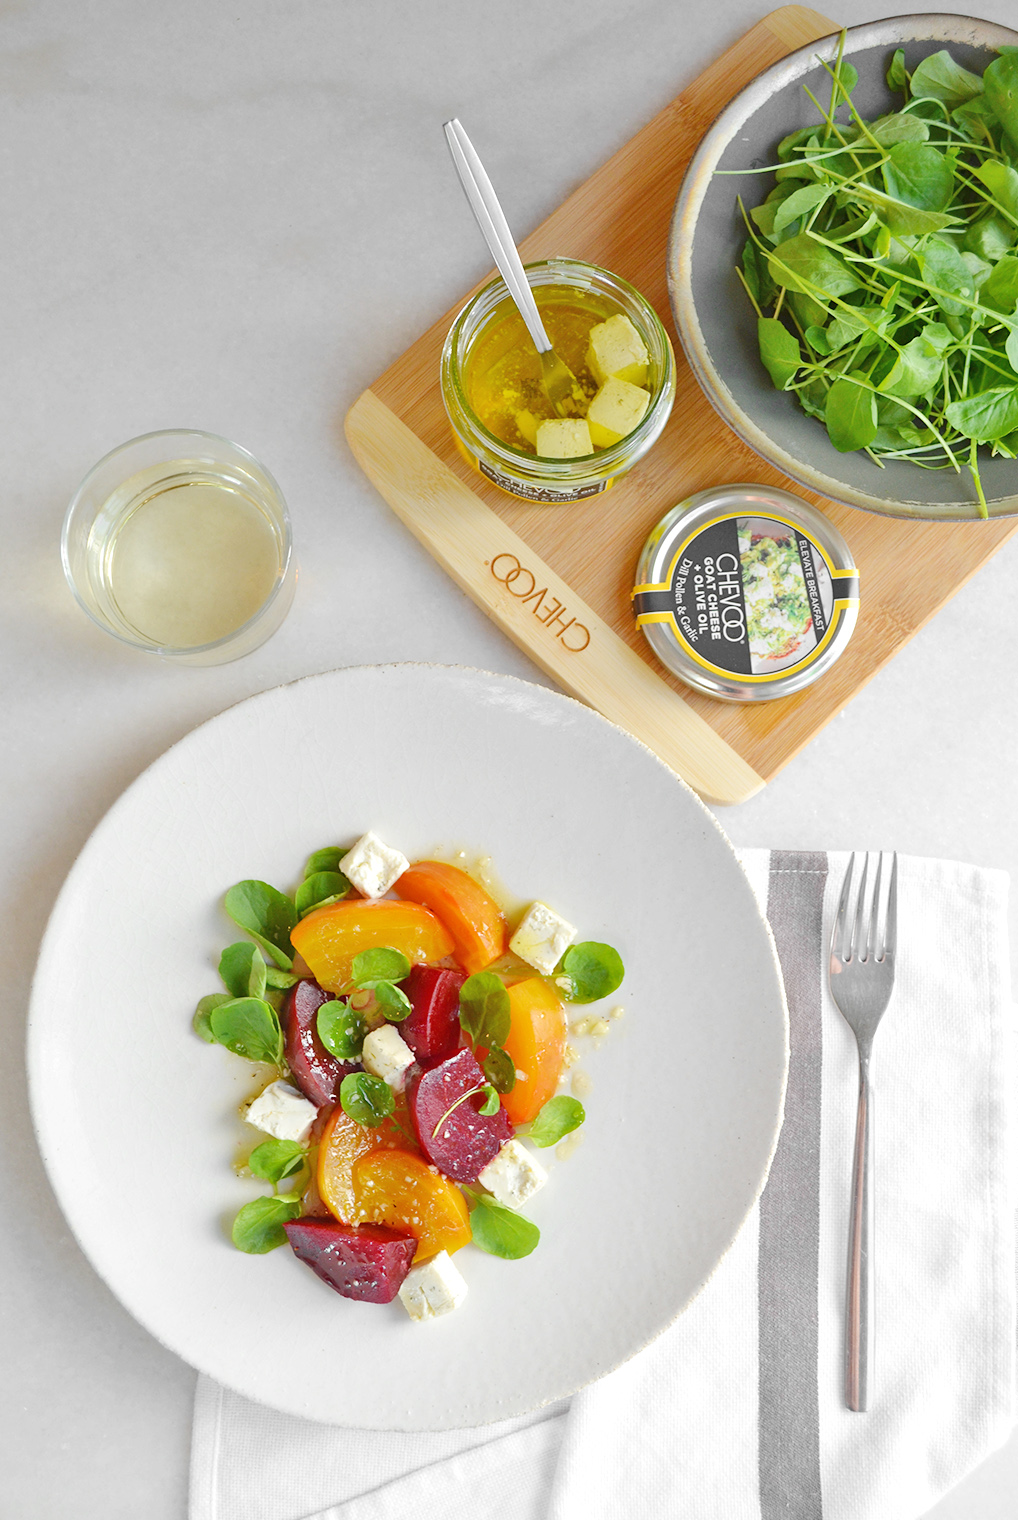 Roasted Beet Salad with CHEVOO and Watercress1